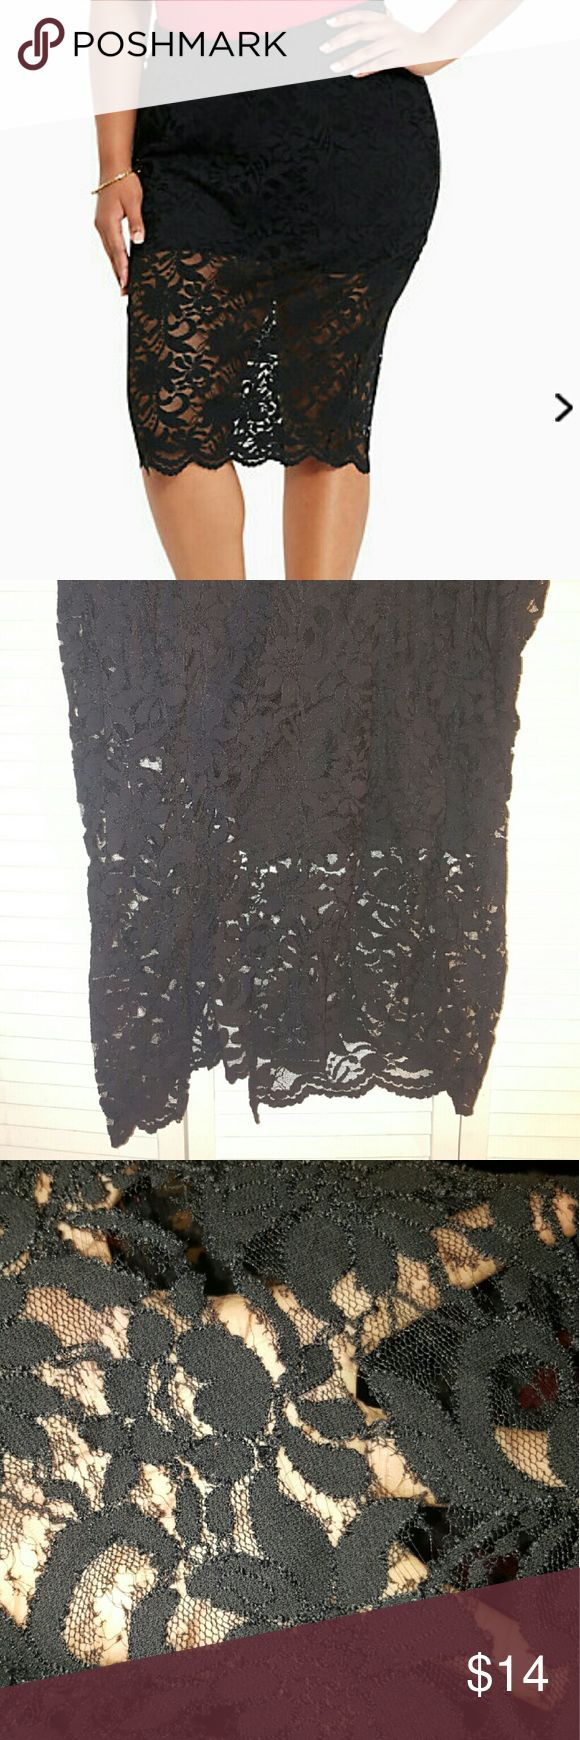 Lace Pencil Skirt 22 torrid used torrid size 22 skirt a few rips in lace not noticeable. torrid  Skirts Pencil